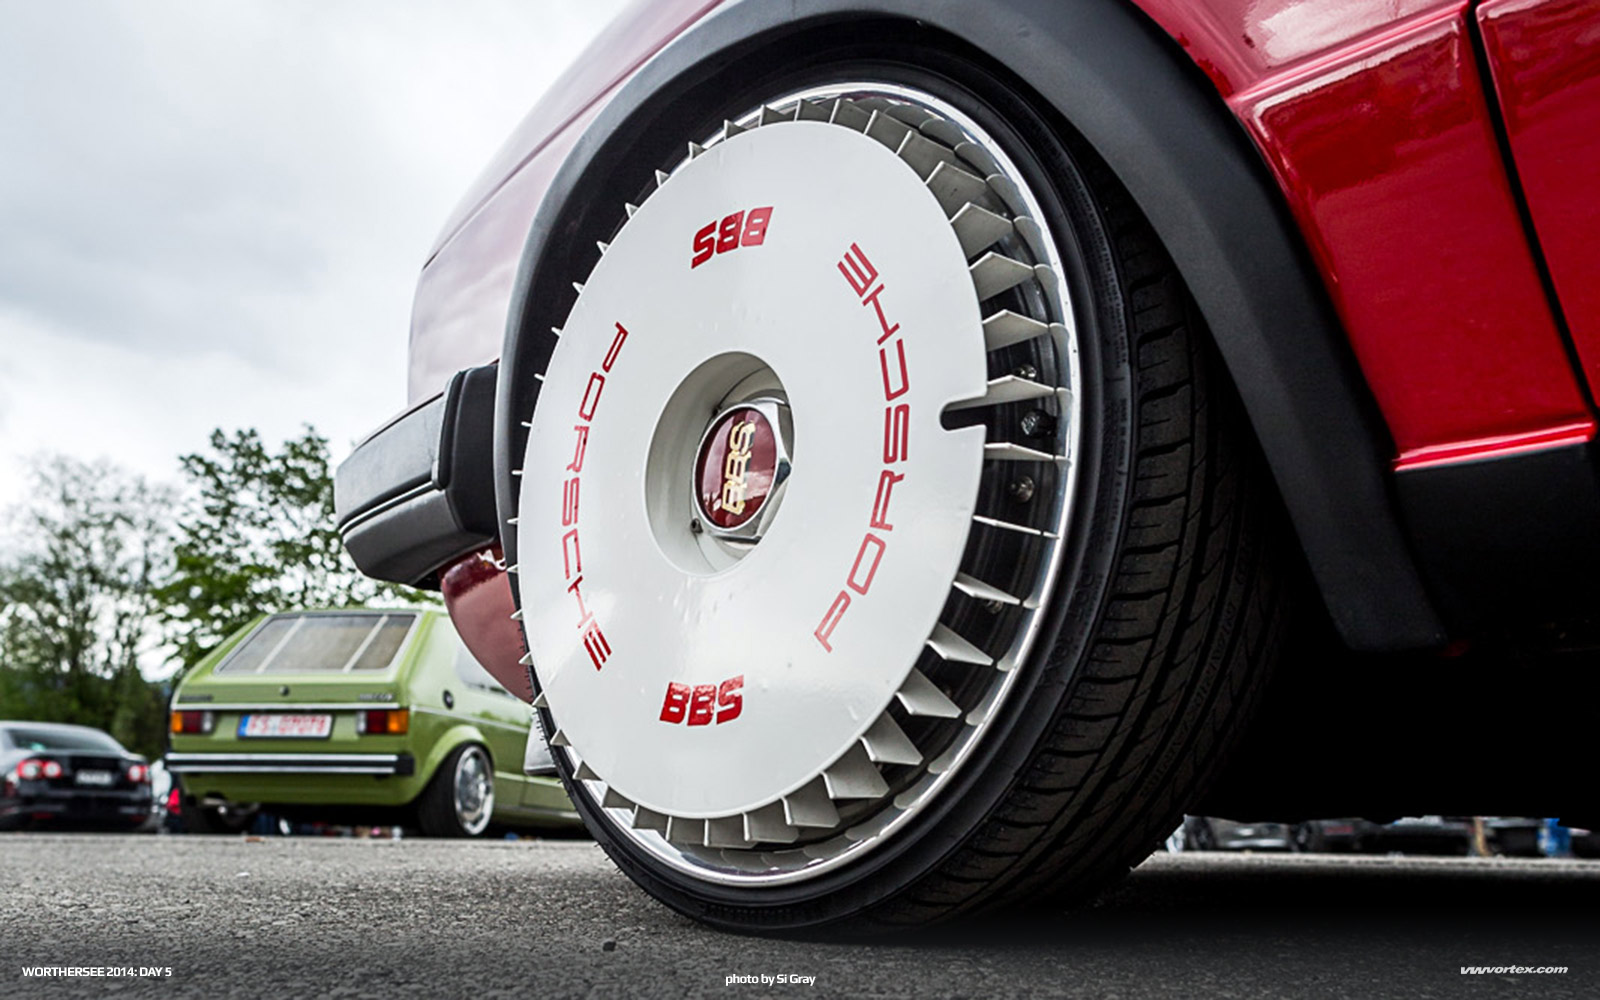 2014-Worthersee-Day-5-Si-Gray-Audi-386